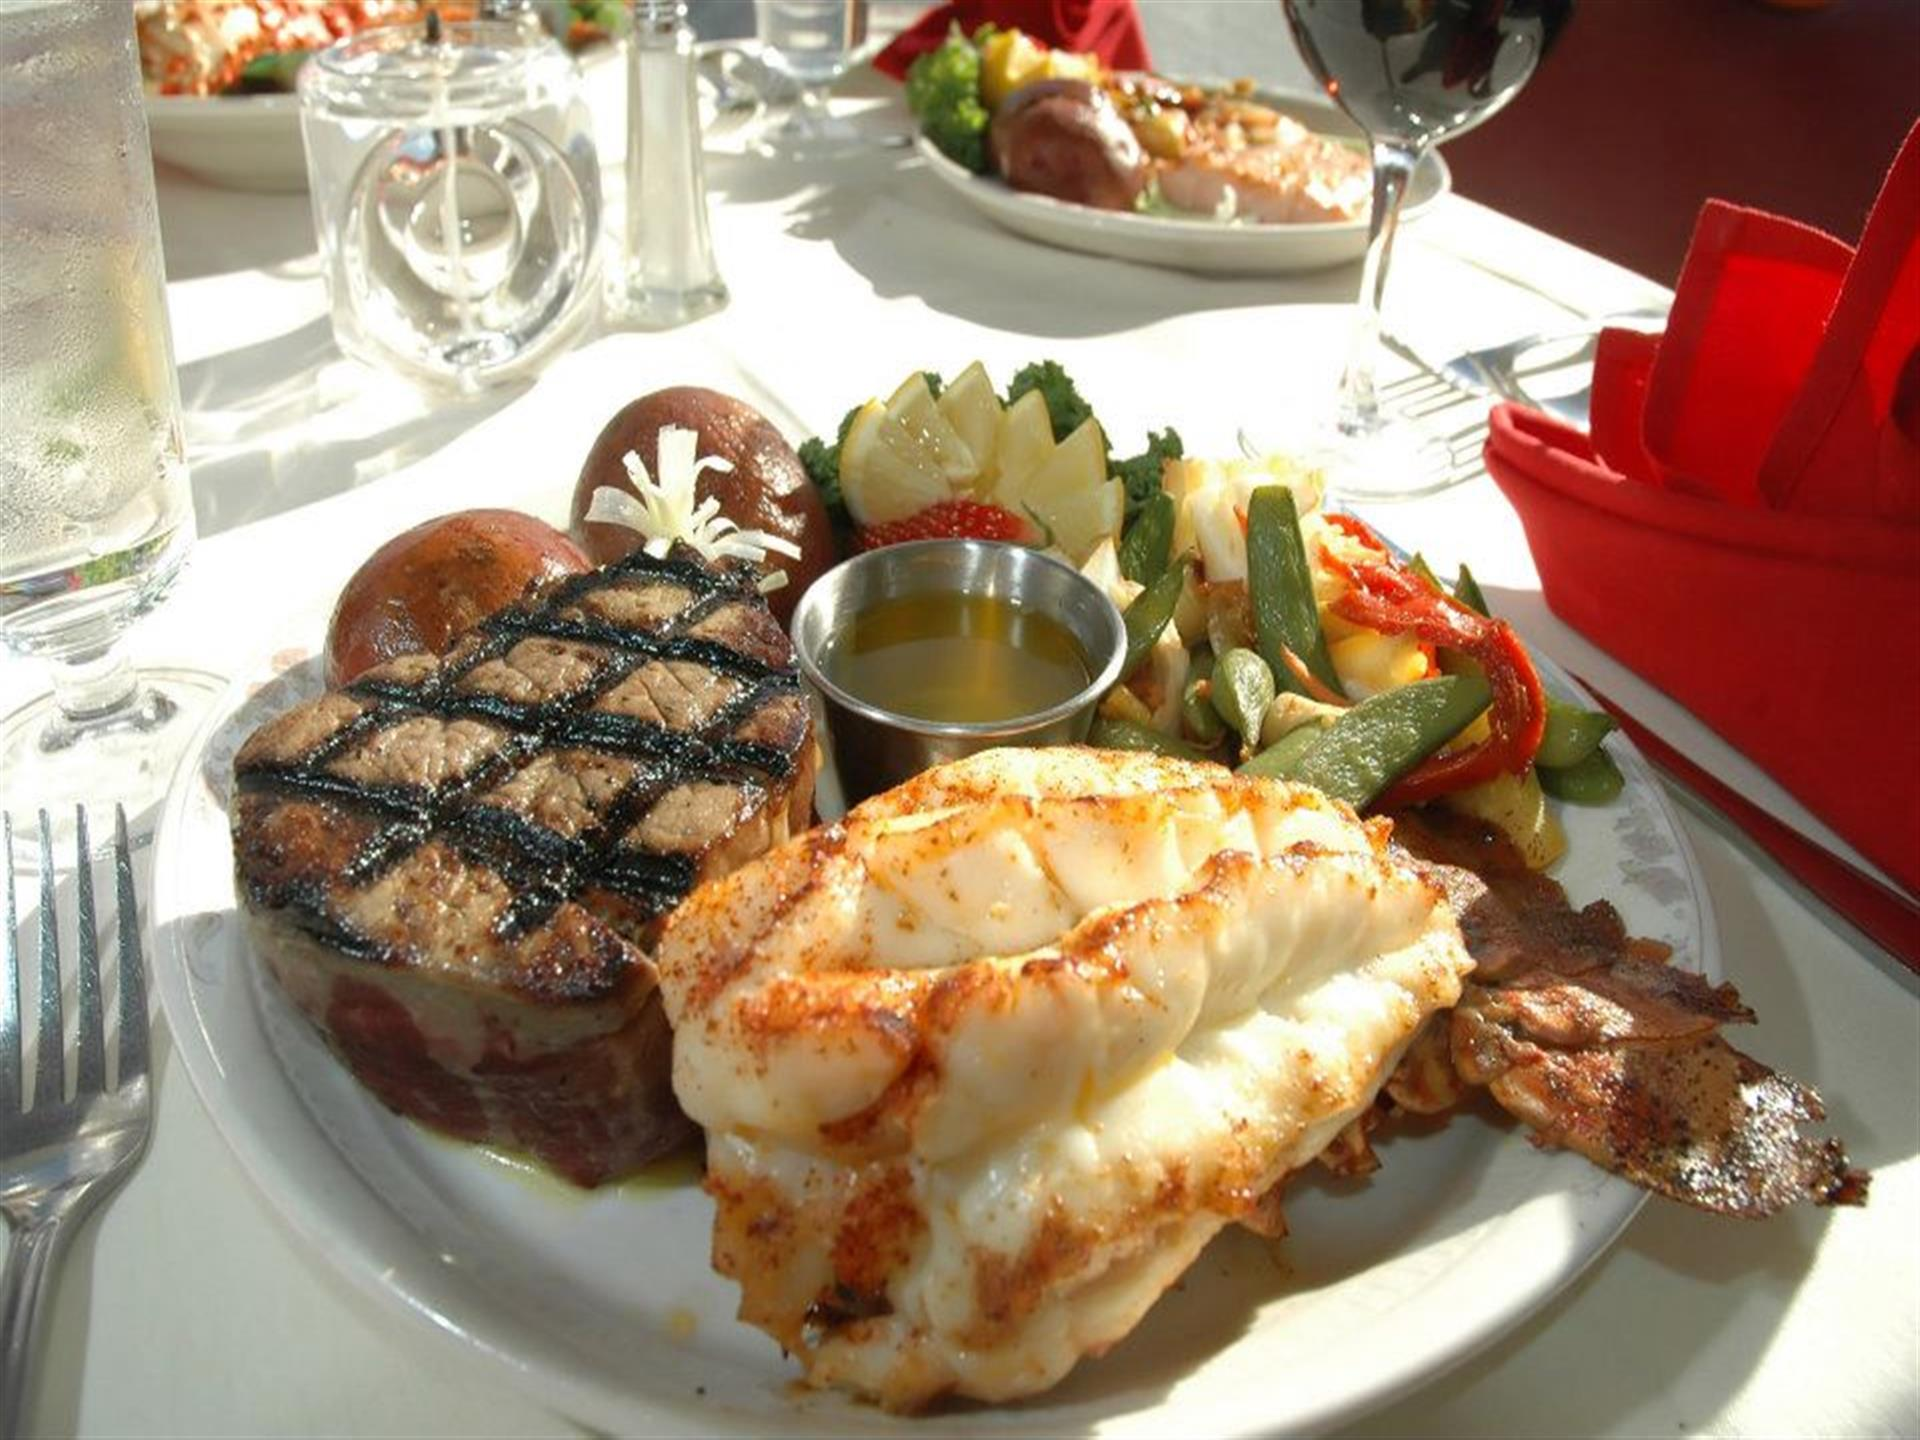 surf and turf plate with steak, lobster tail and vegetables